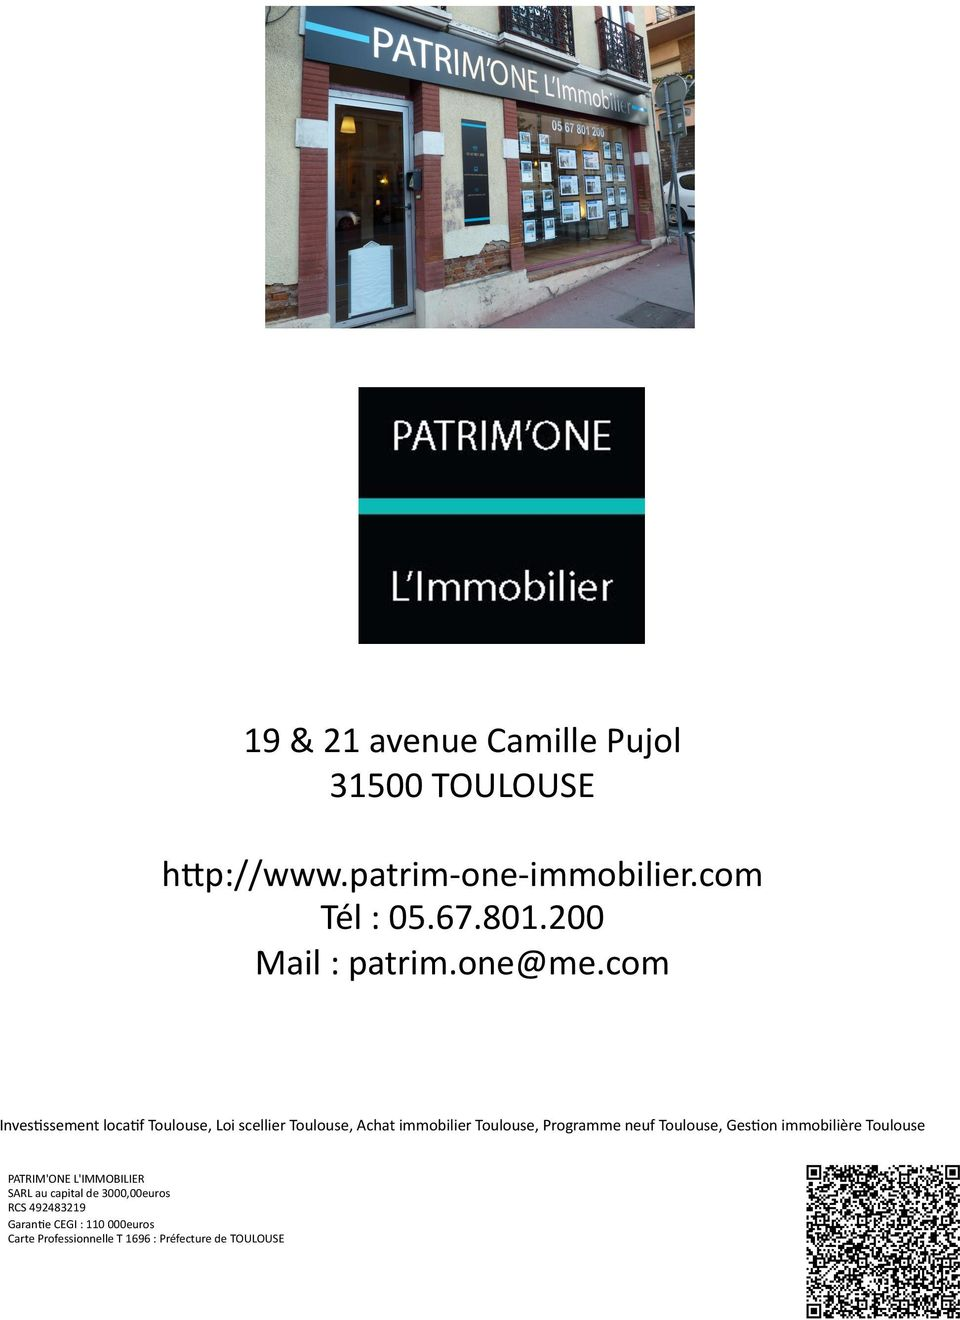 com InvesEssement locaef Toulouse, Loi scellier Toulouse, Achat immobilier Toulouse, Programme neuf